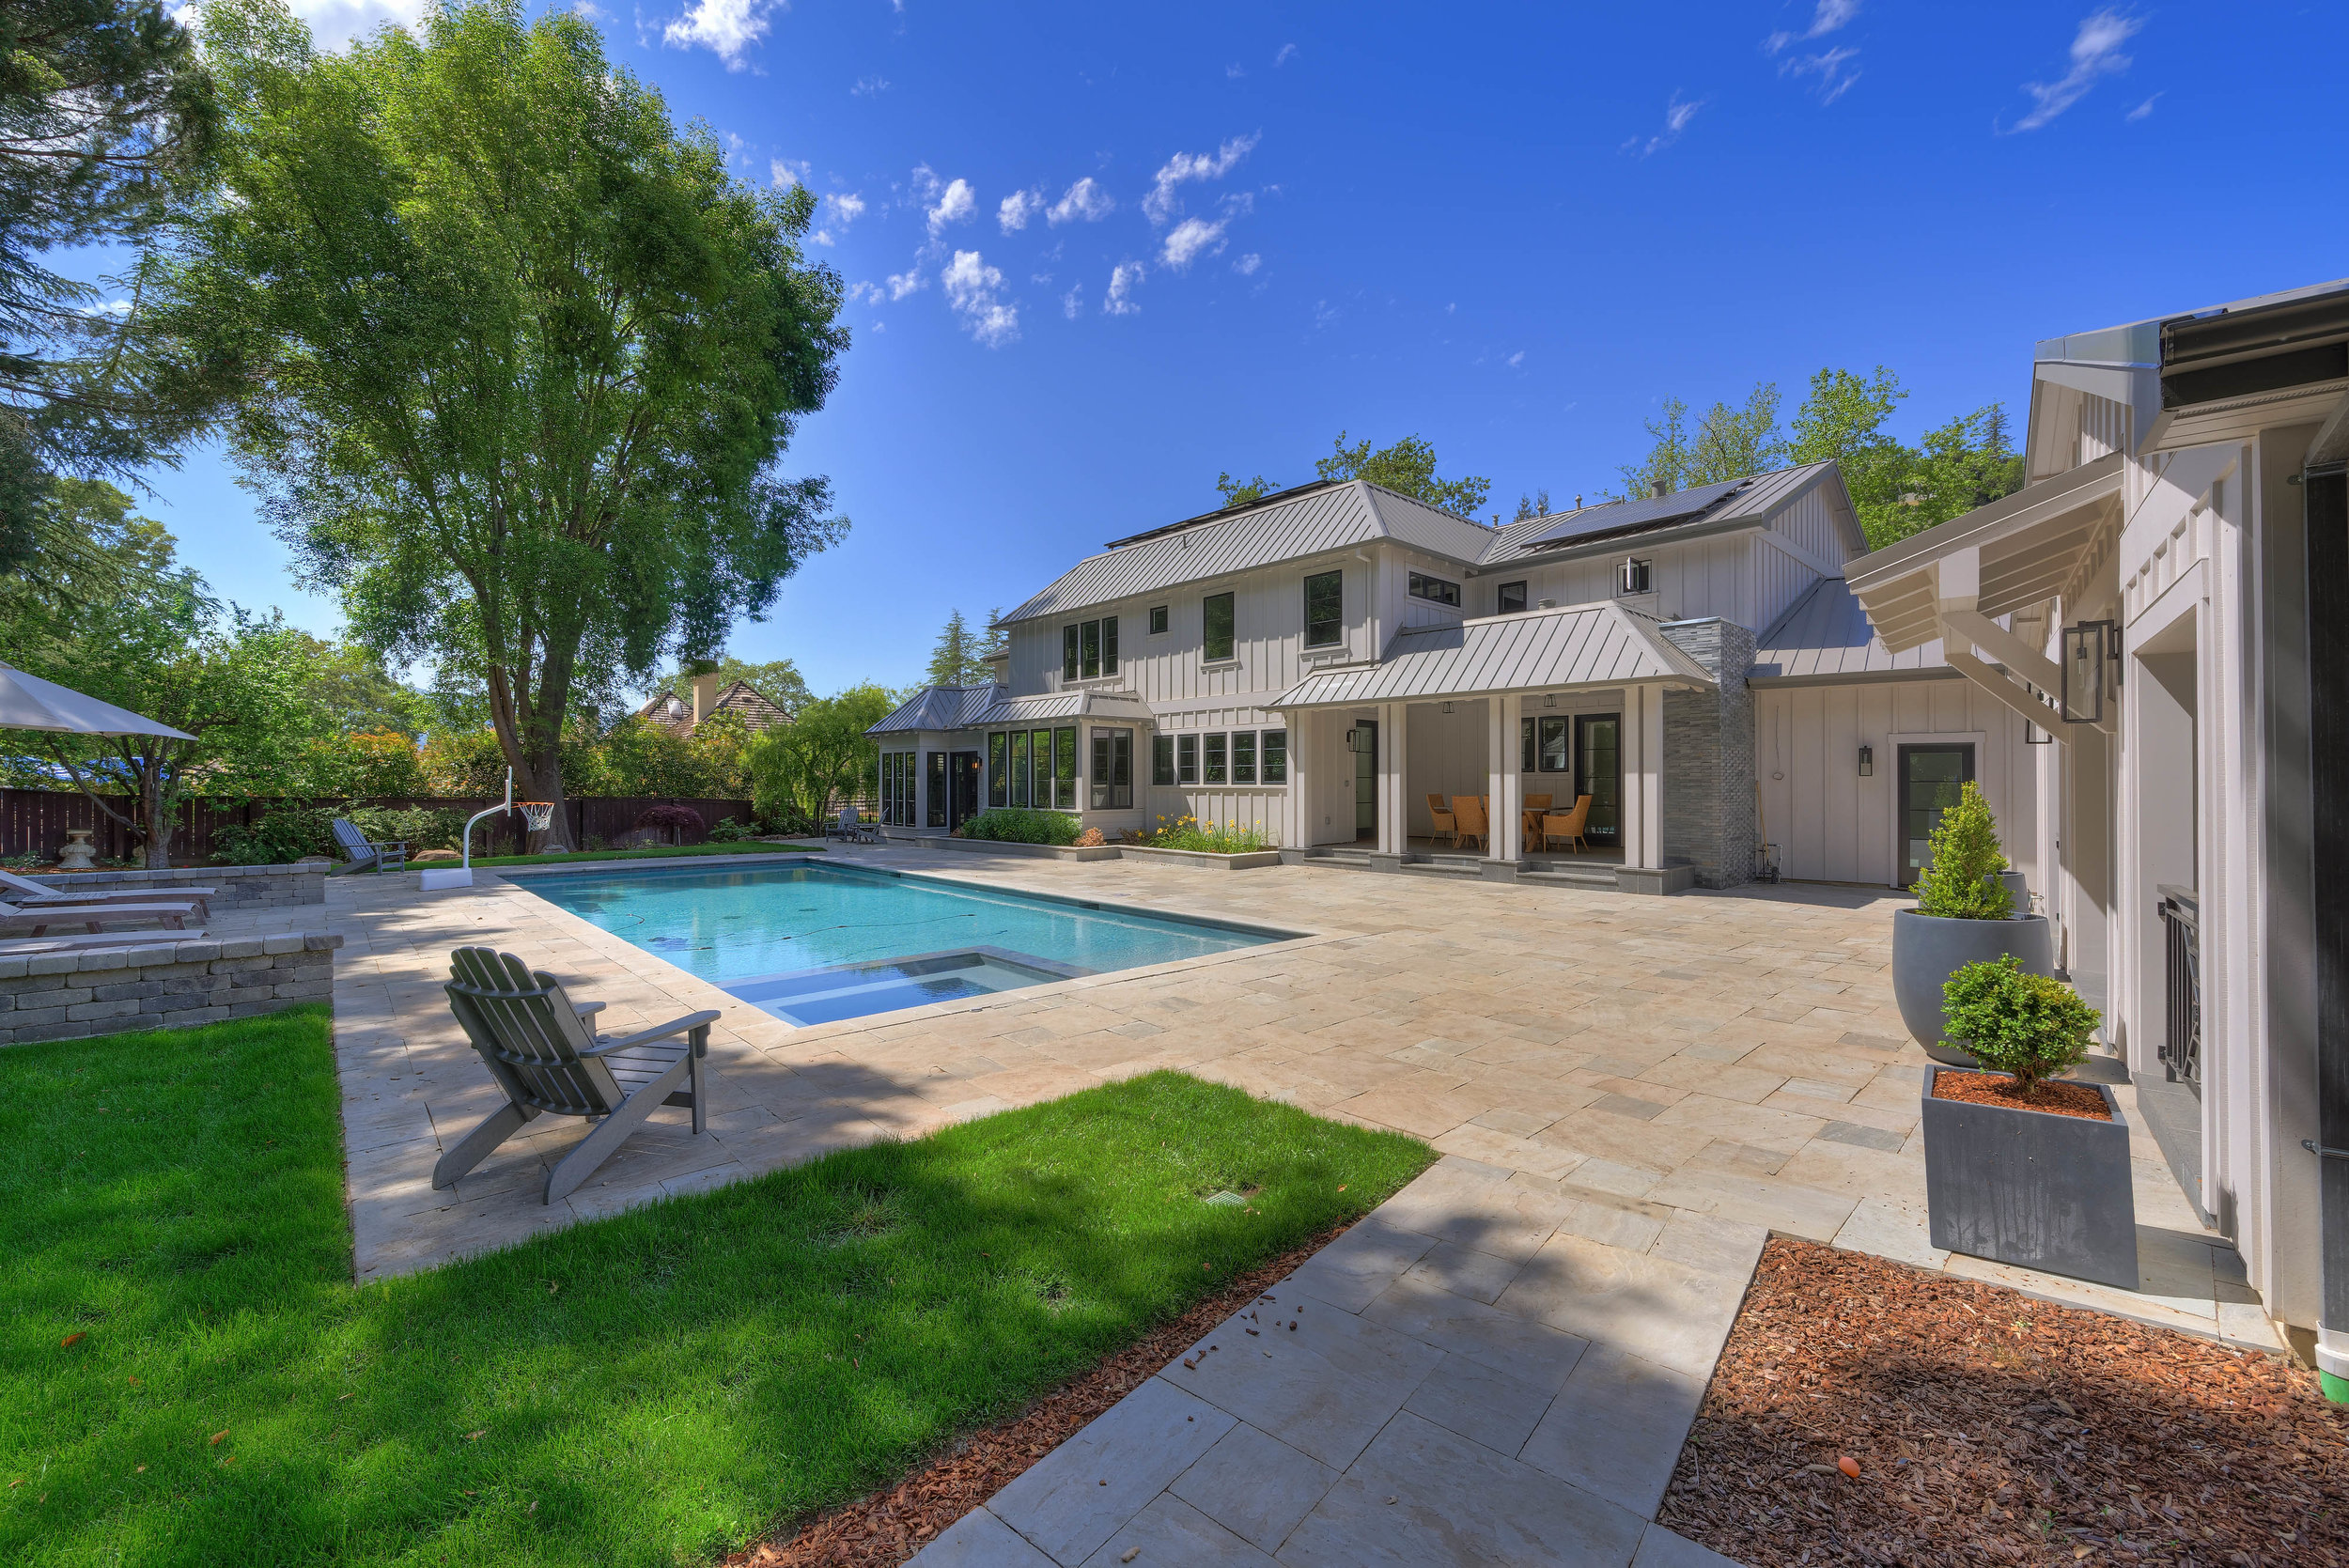 44_back of house from poolhouse.jpg